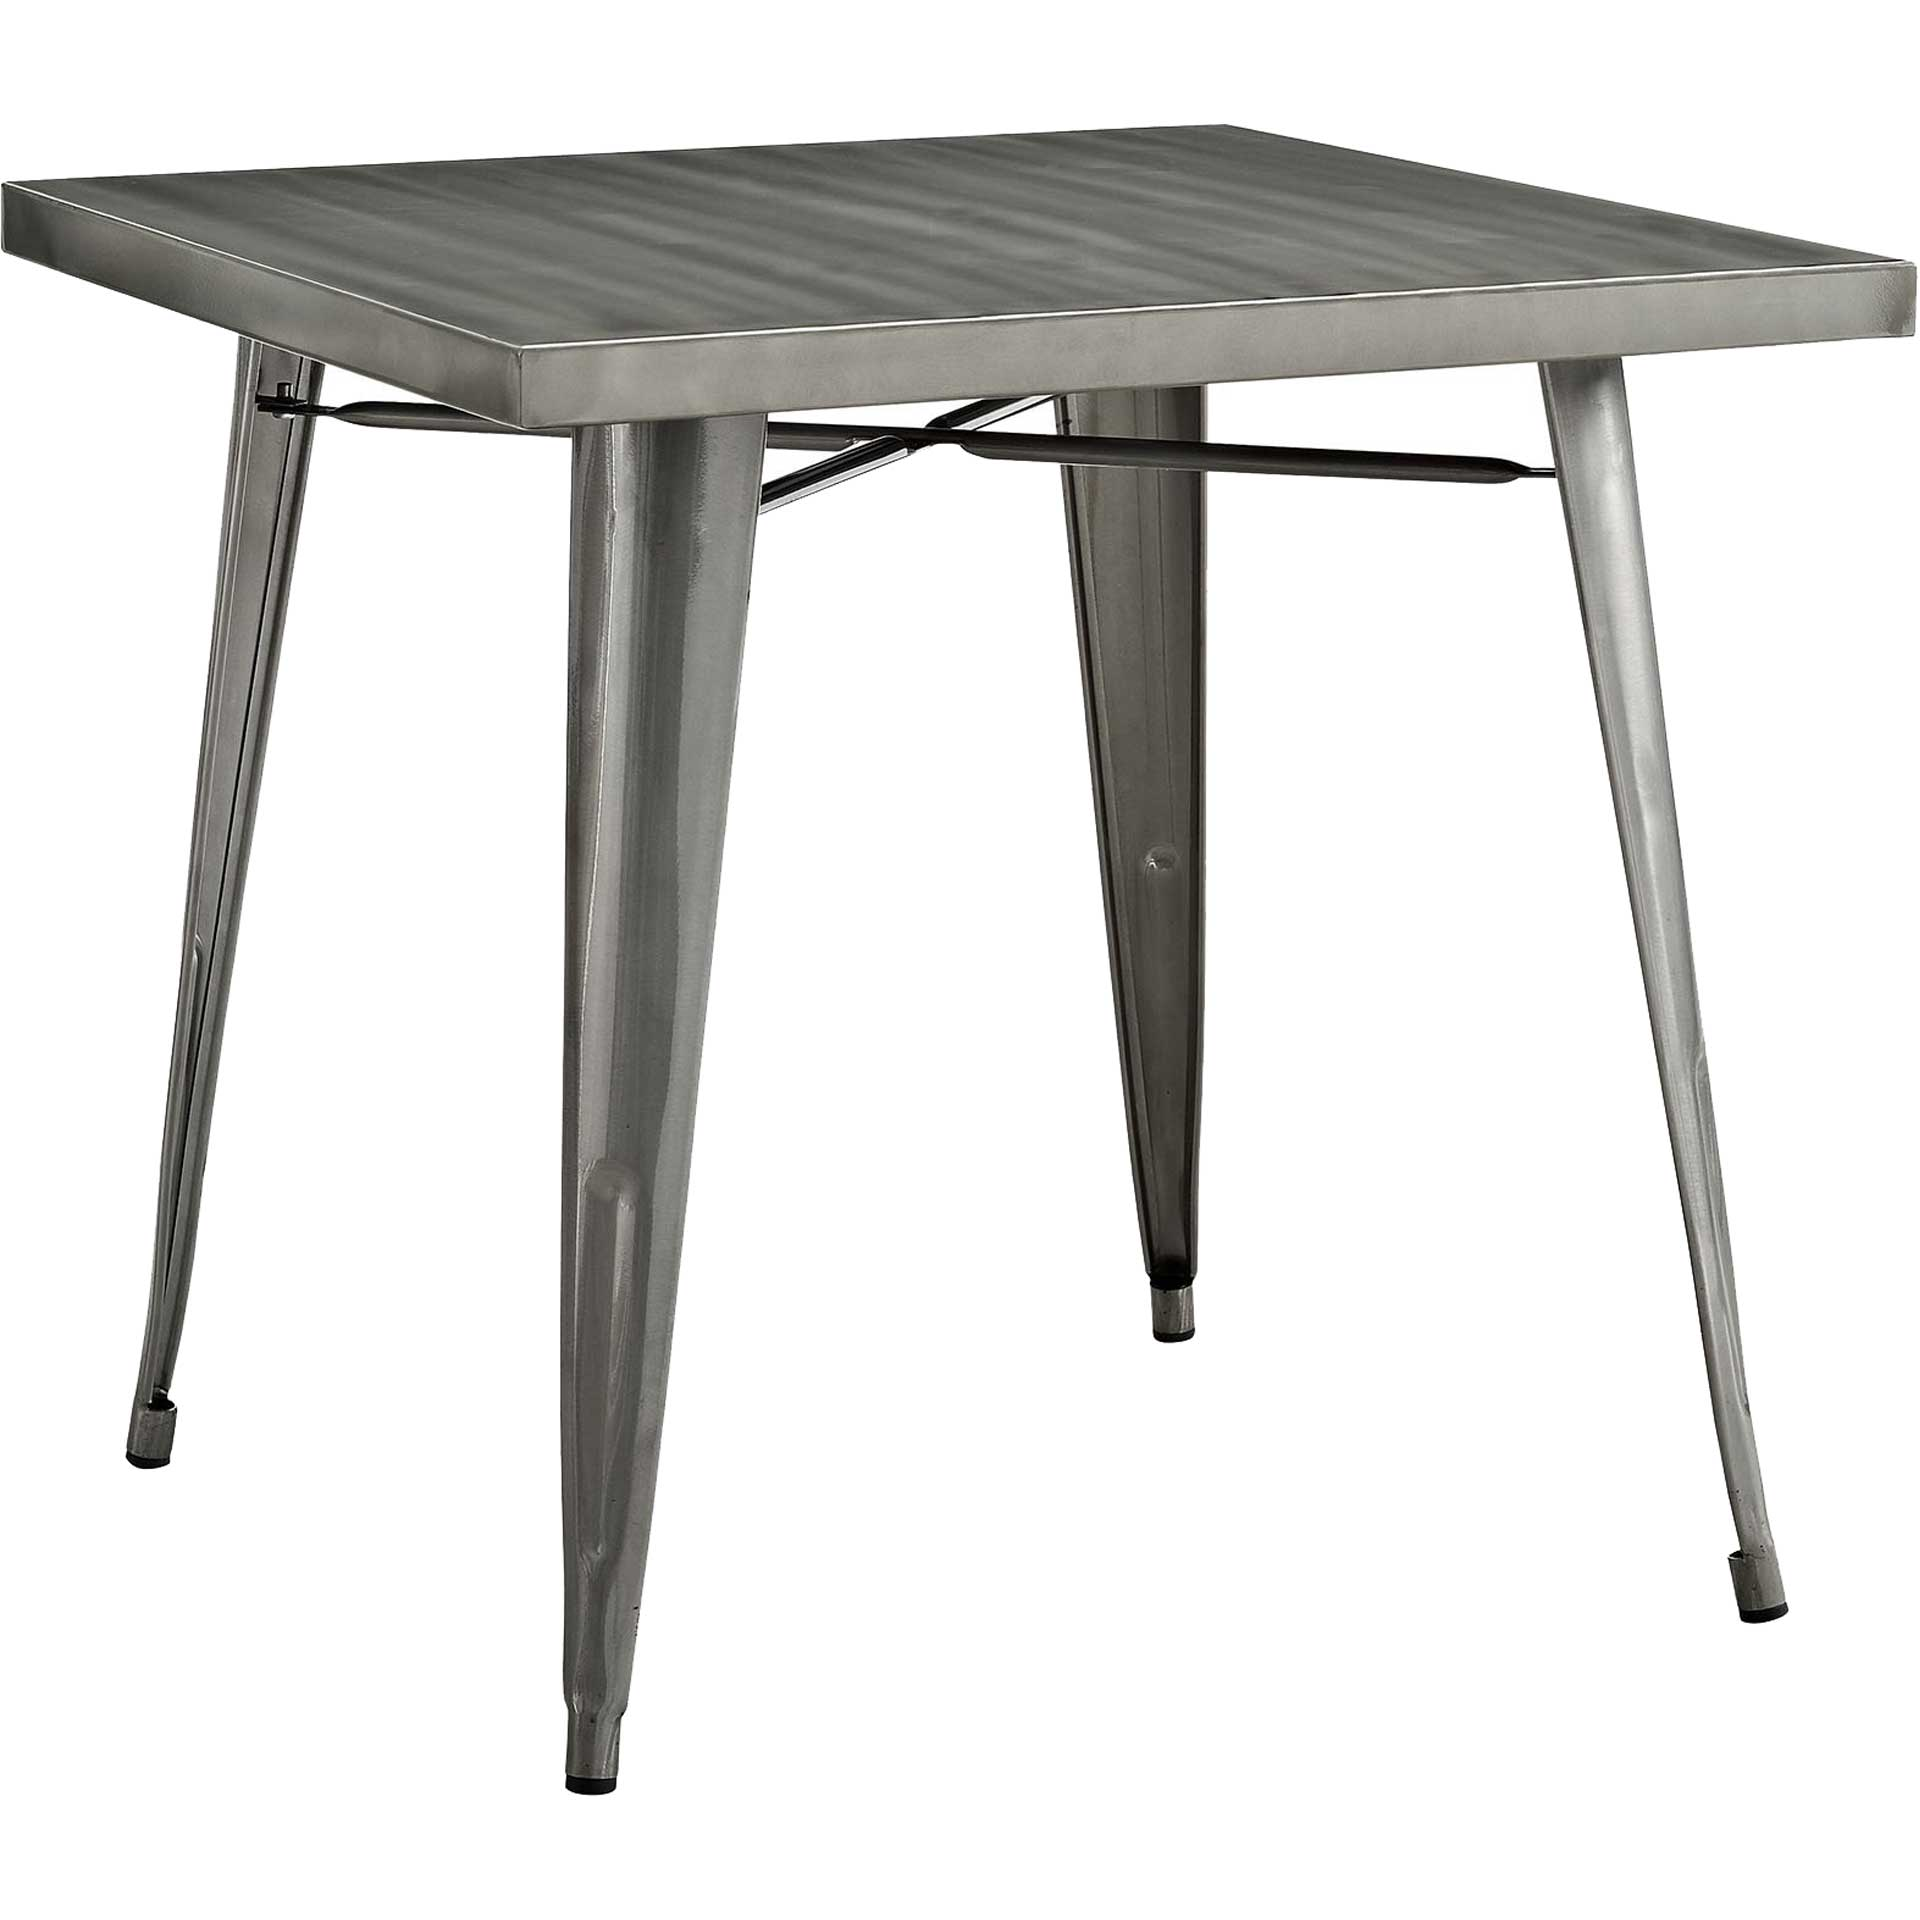 Anthropology Square Dining Table Gunmetal